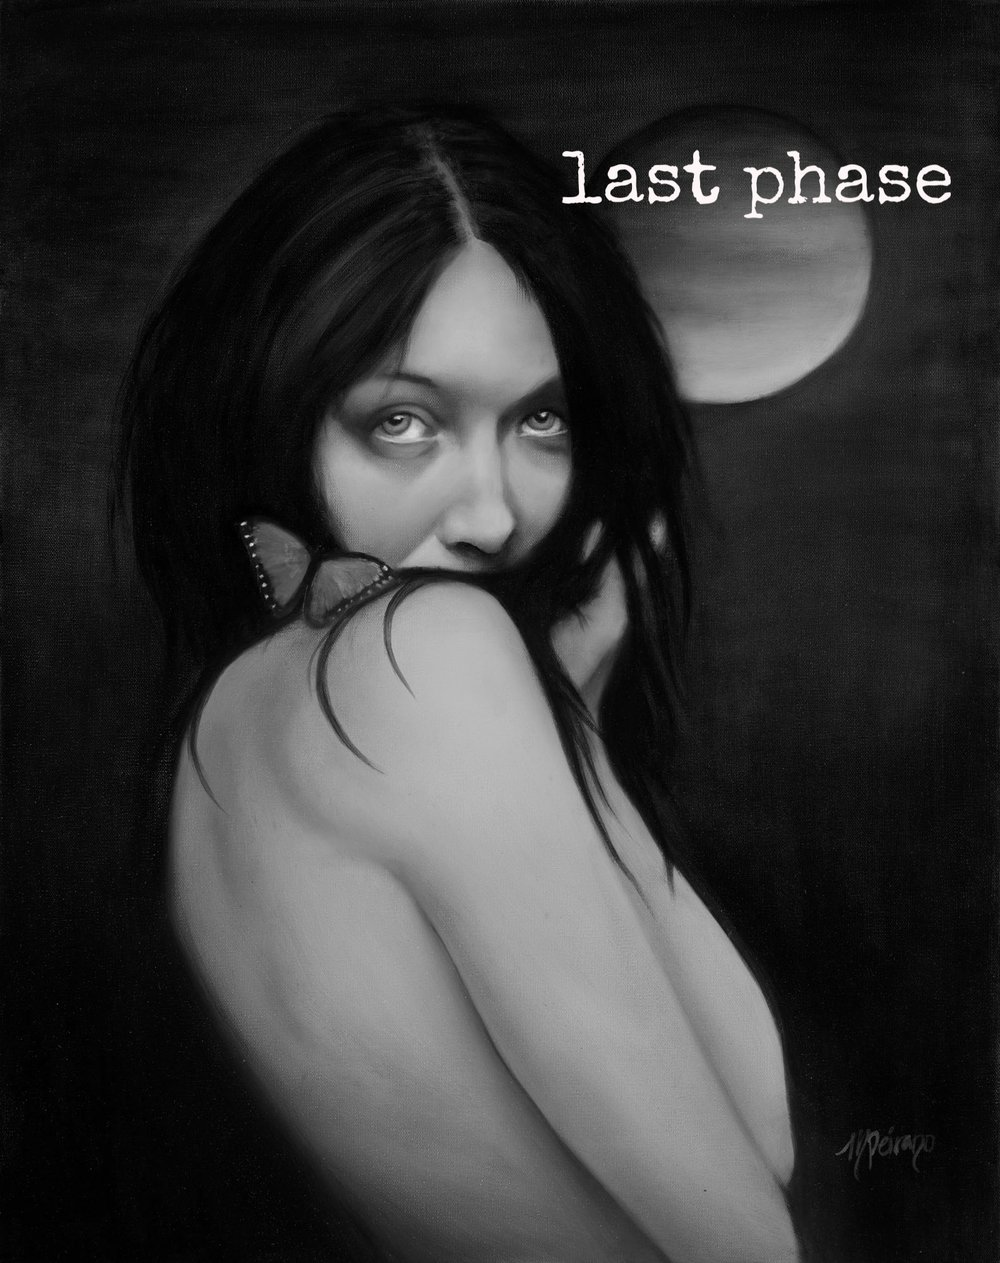 The moon wanesthe time of death nearsand the old becomes compost for the newThe dark goddessrules the darkness with her white lightand finally rests withinShe will ariseto seduce me with precious giftsand I will celebrate -